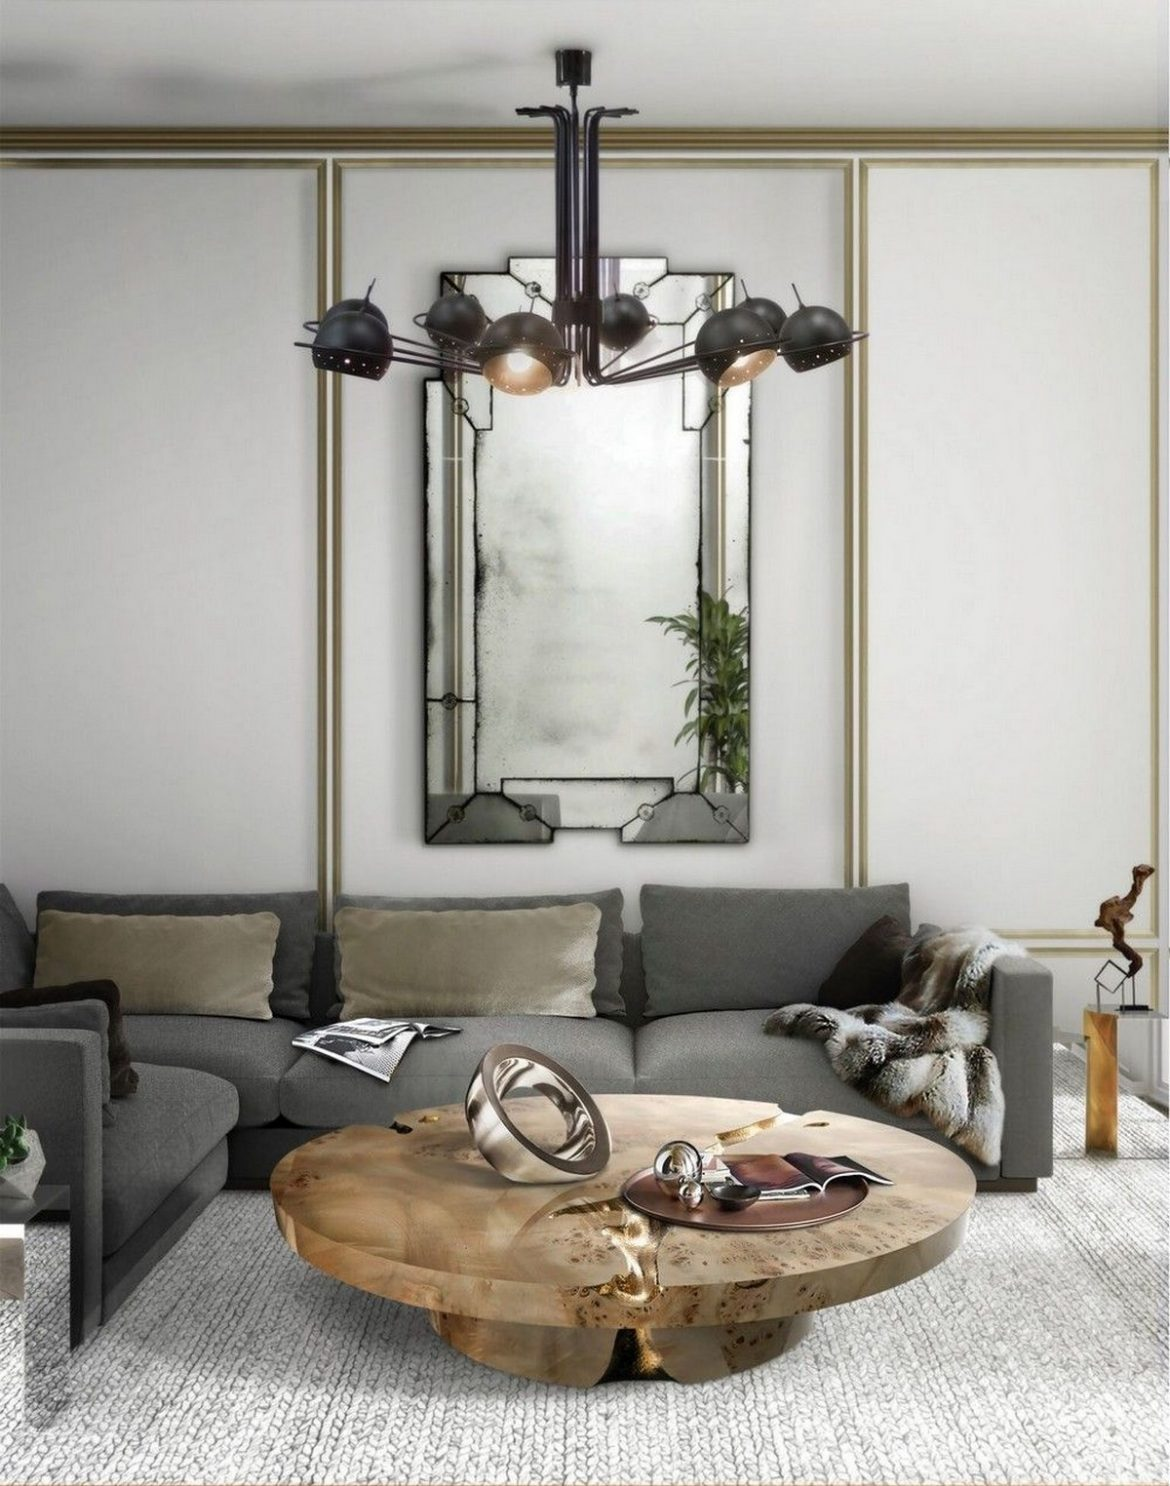 Center Tables Majestic Center Tables To Elevate Your Living Room Decor empire 2 1